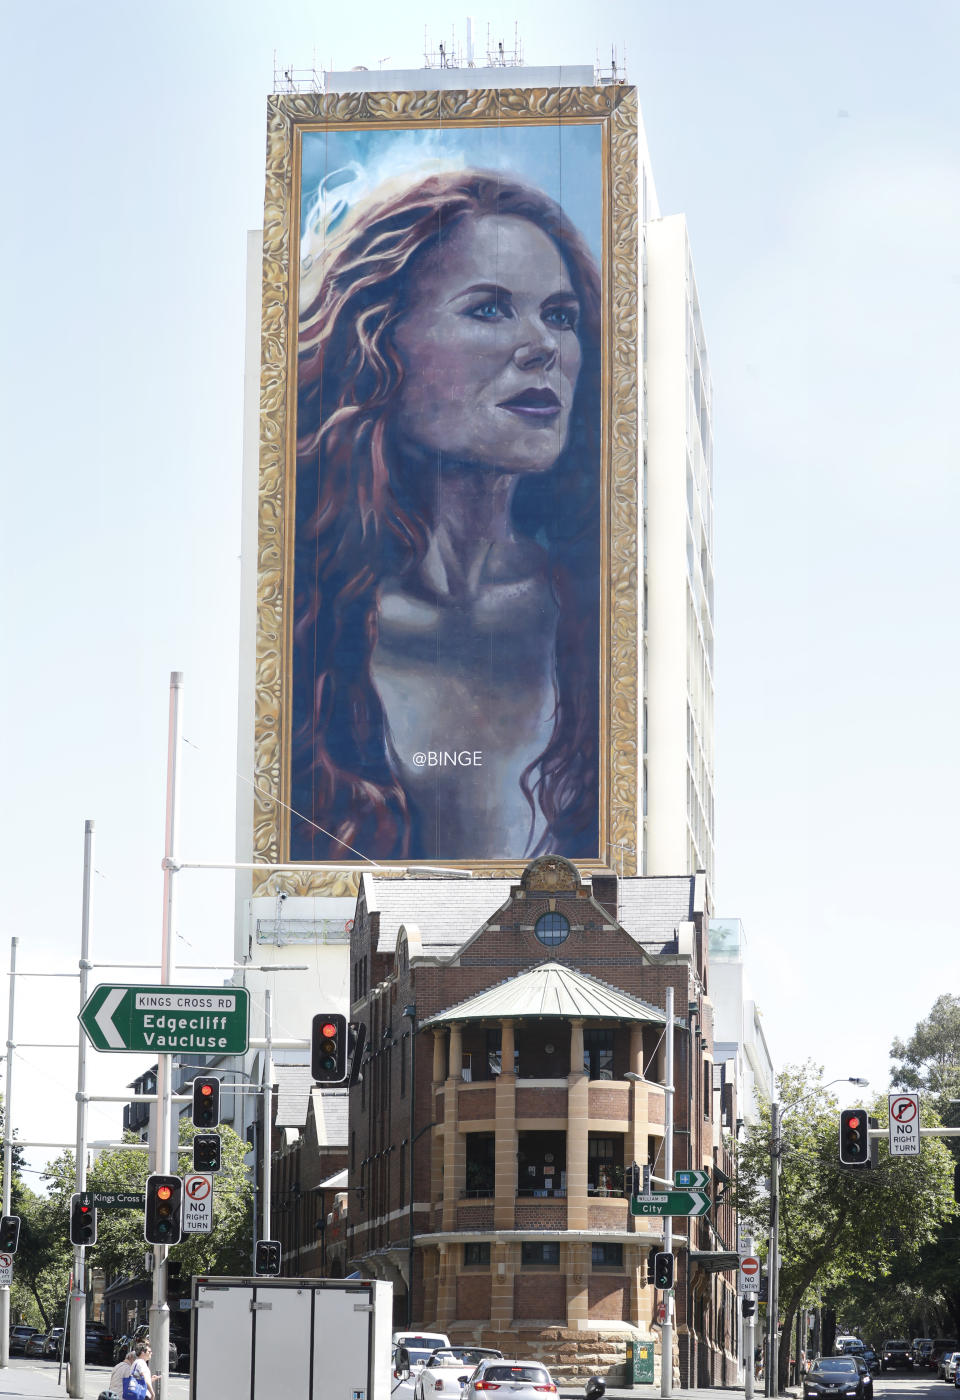 18 story portrait of Nicole Kidman appears in Sydney to celebrate the launch of the biggest thriller The Undoing streaming on Binge.